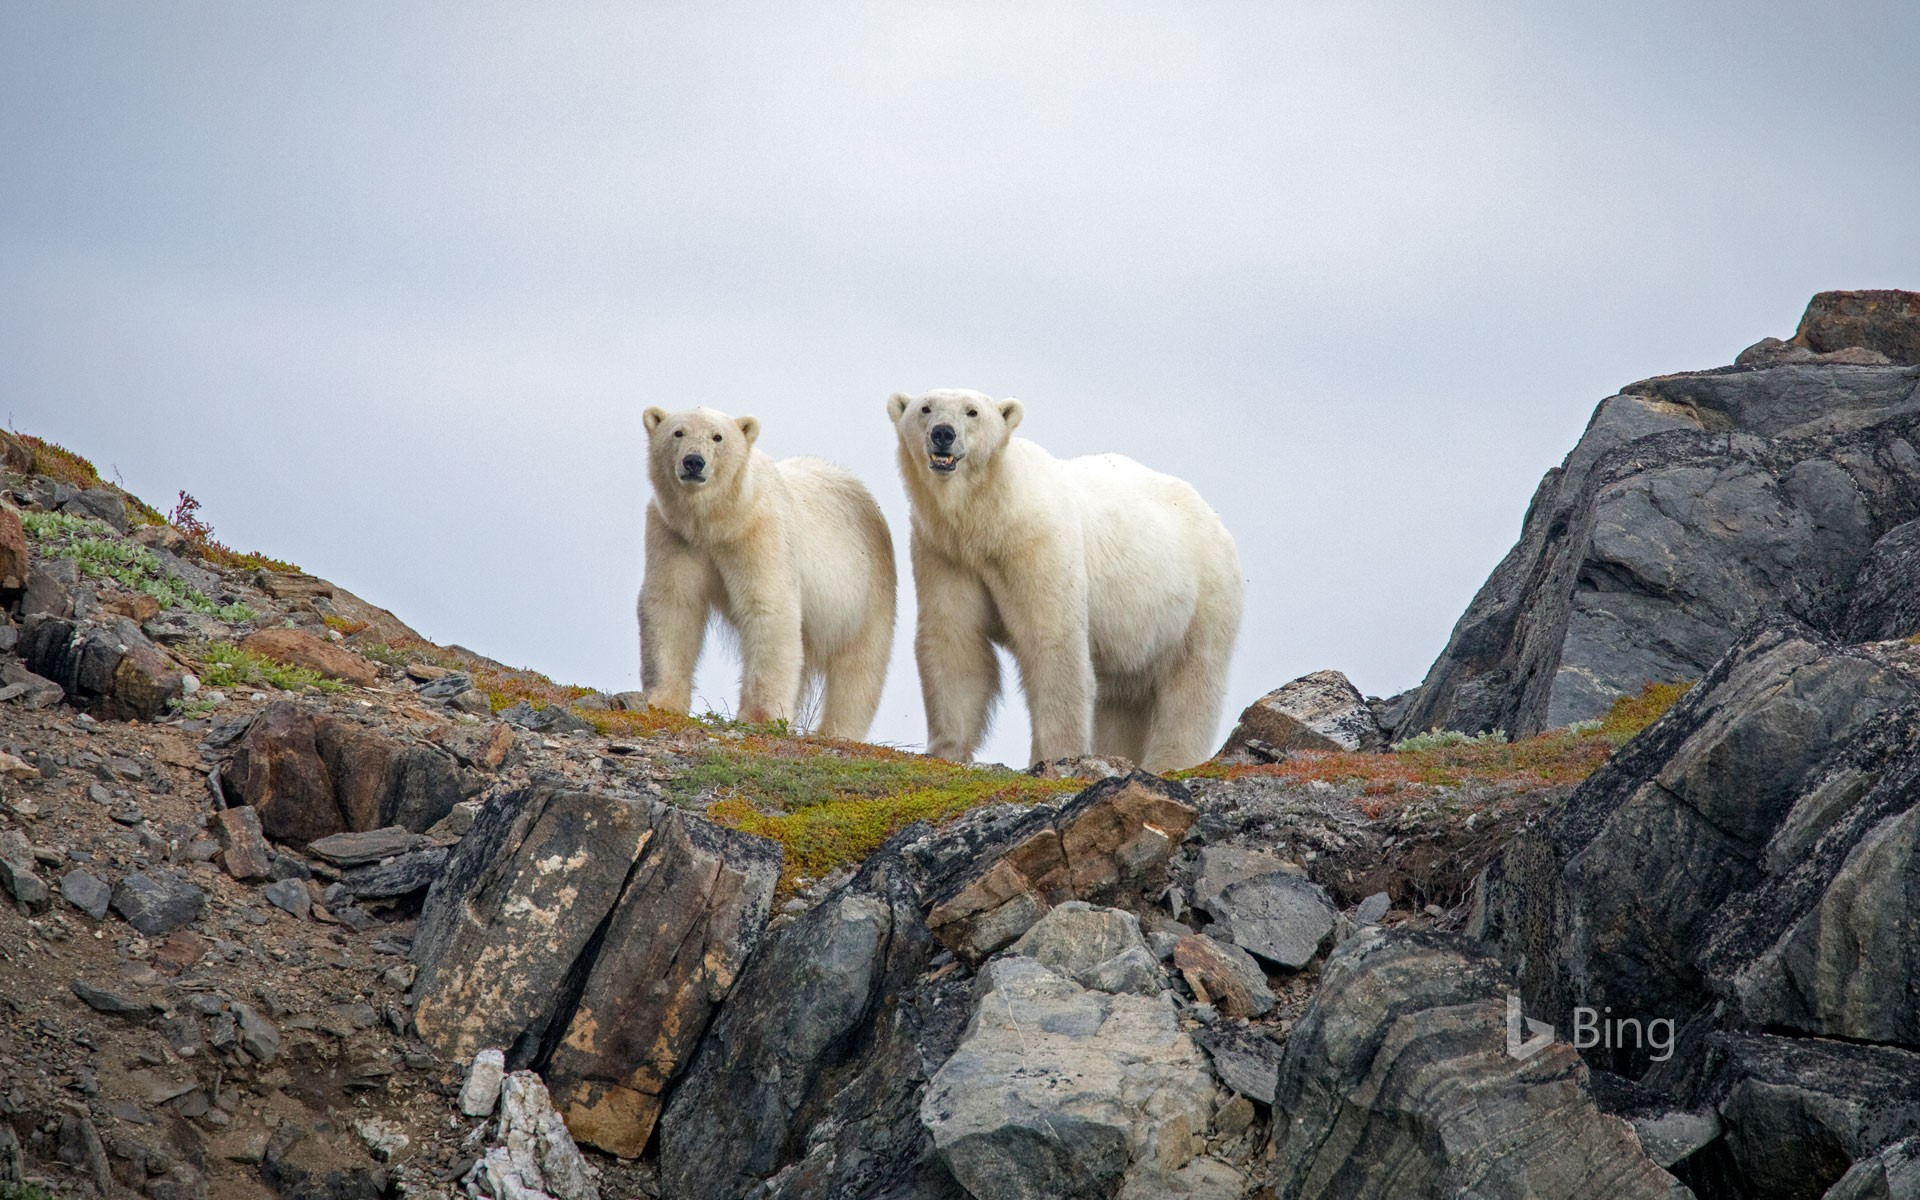 Polar bears in Torngat Mountains National Park, Canada